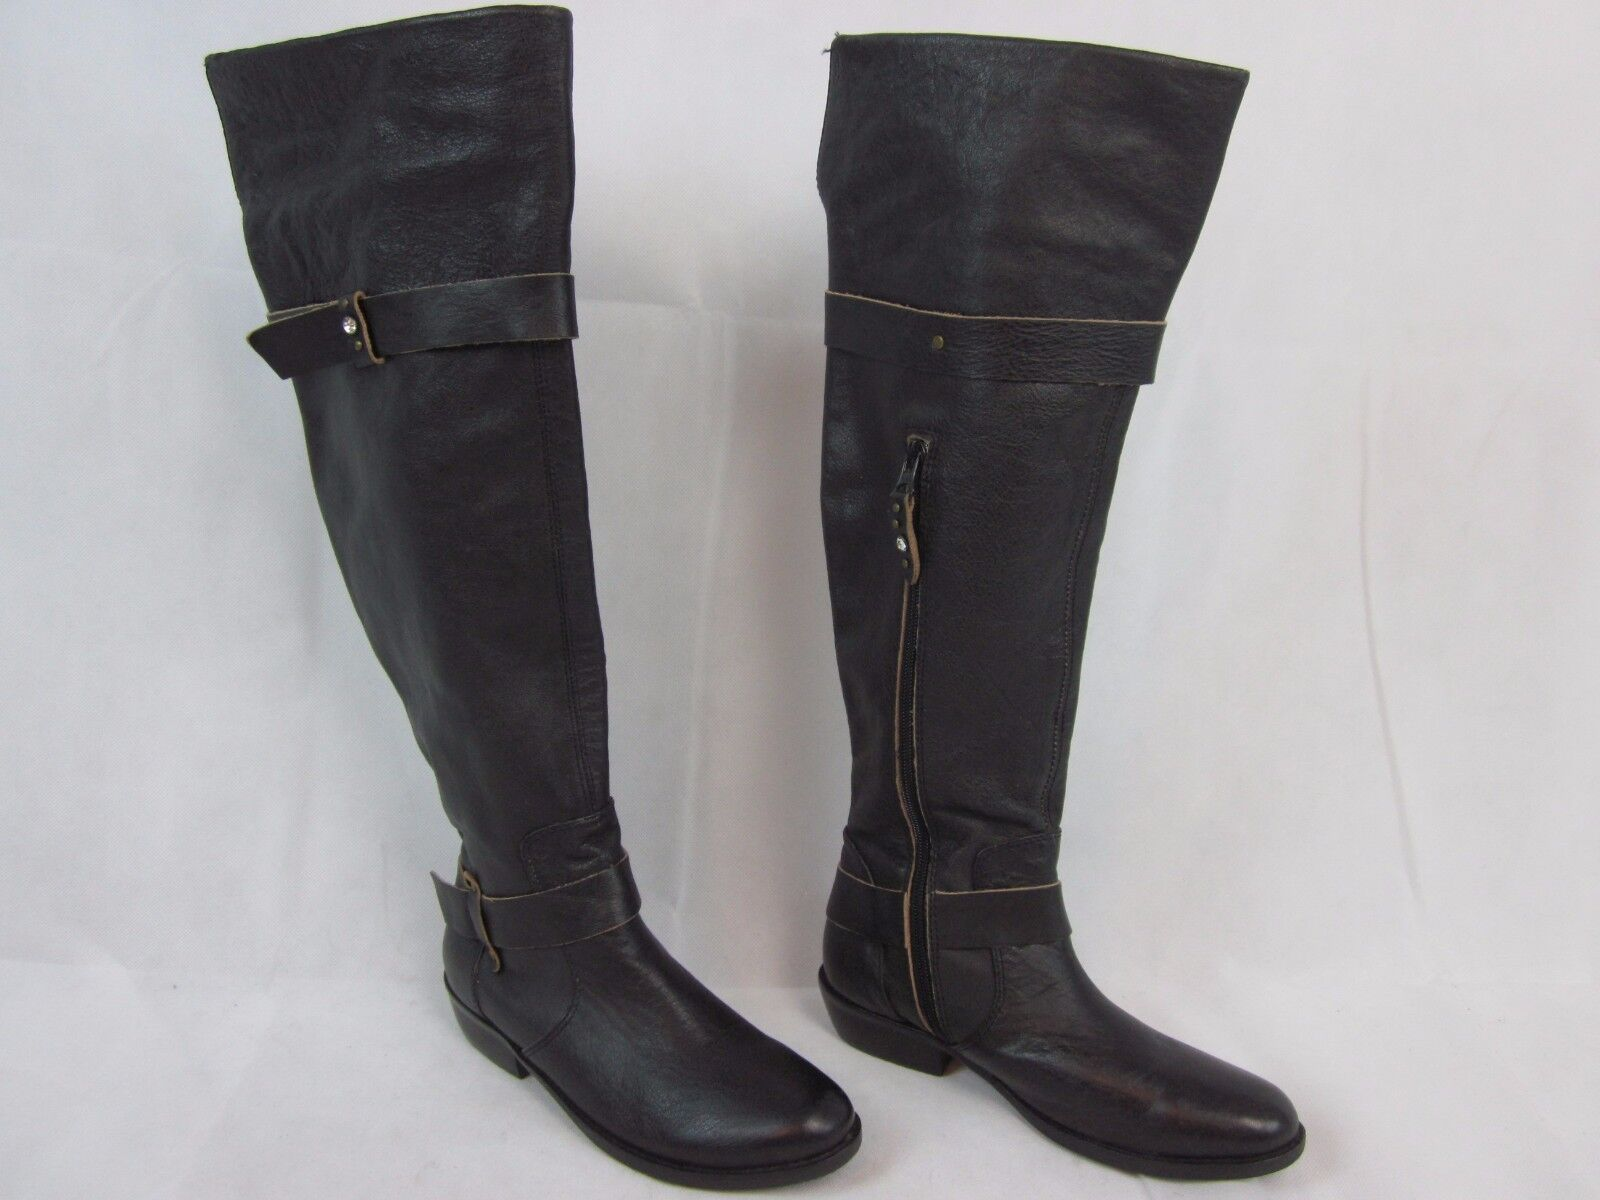 Anthropologie Faryl Robin Tall Black Leather Bling Riding boots Women 6 M- EUC